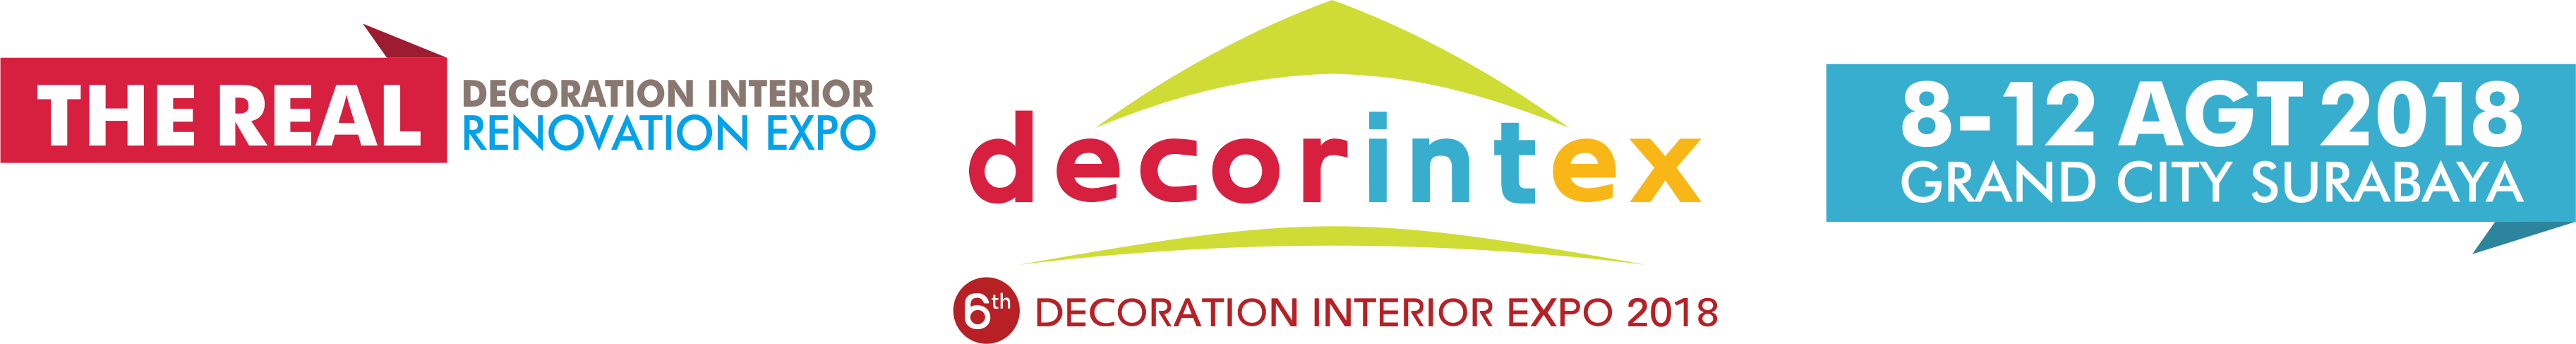 Decorintex 2018